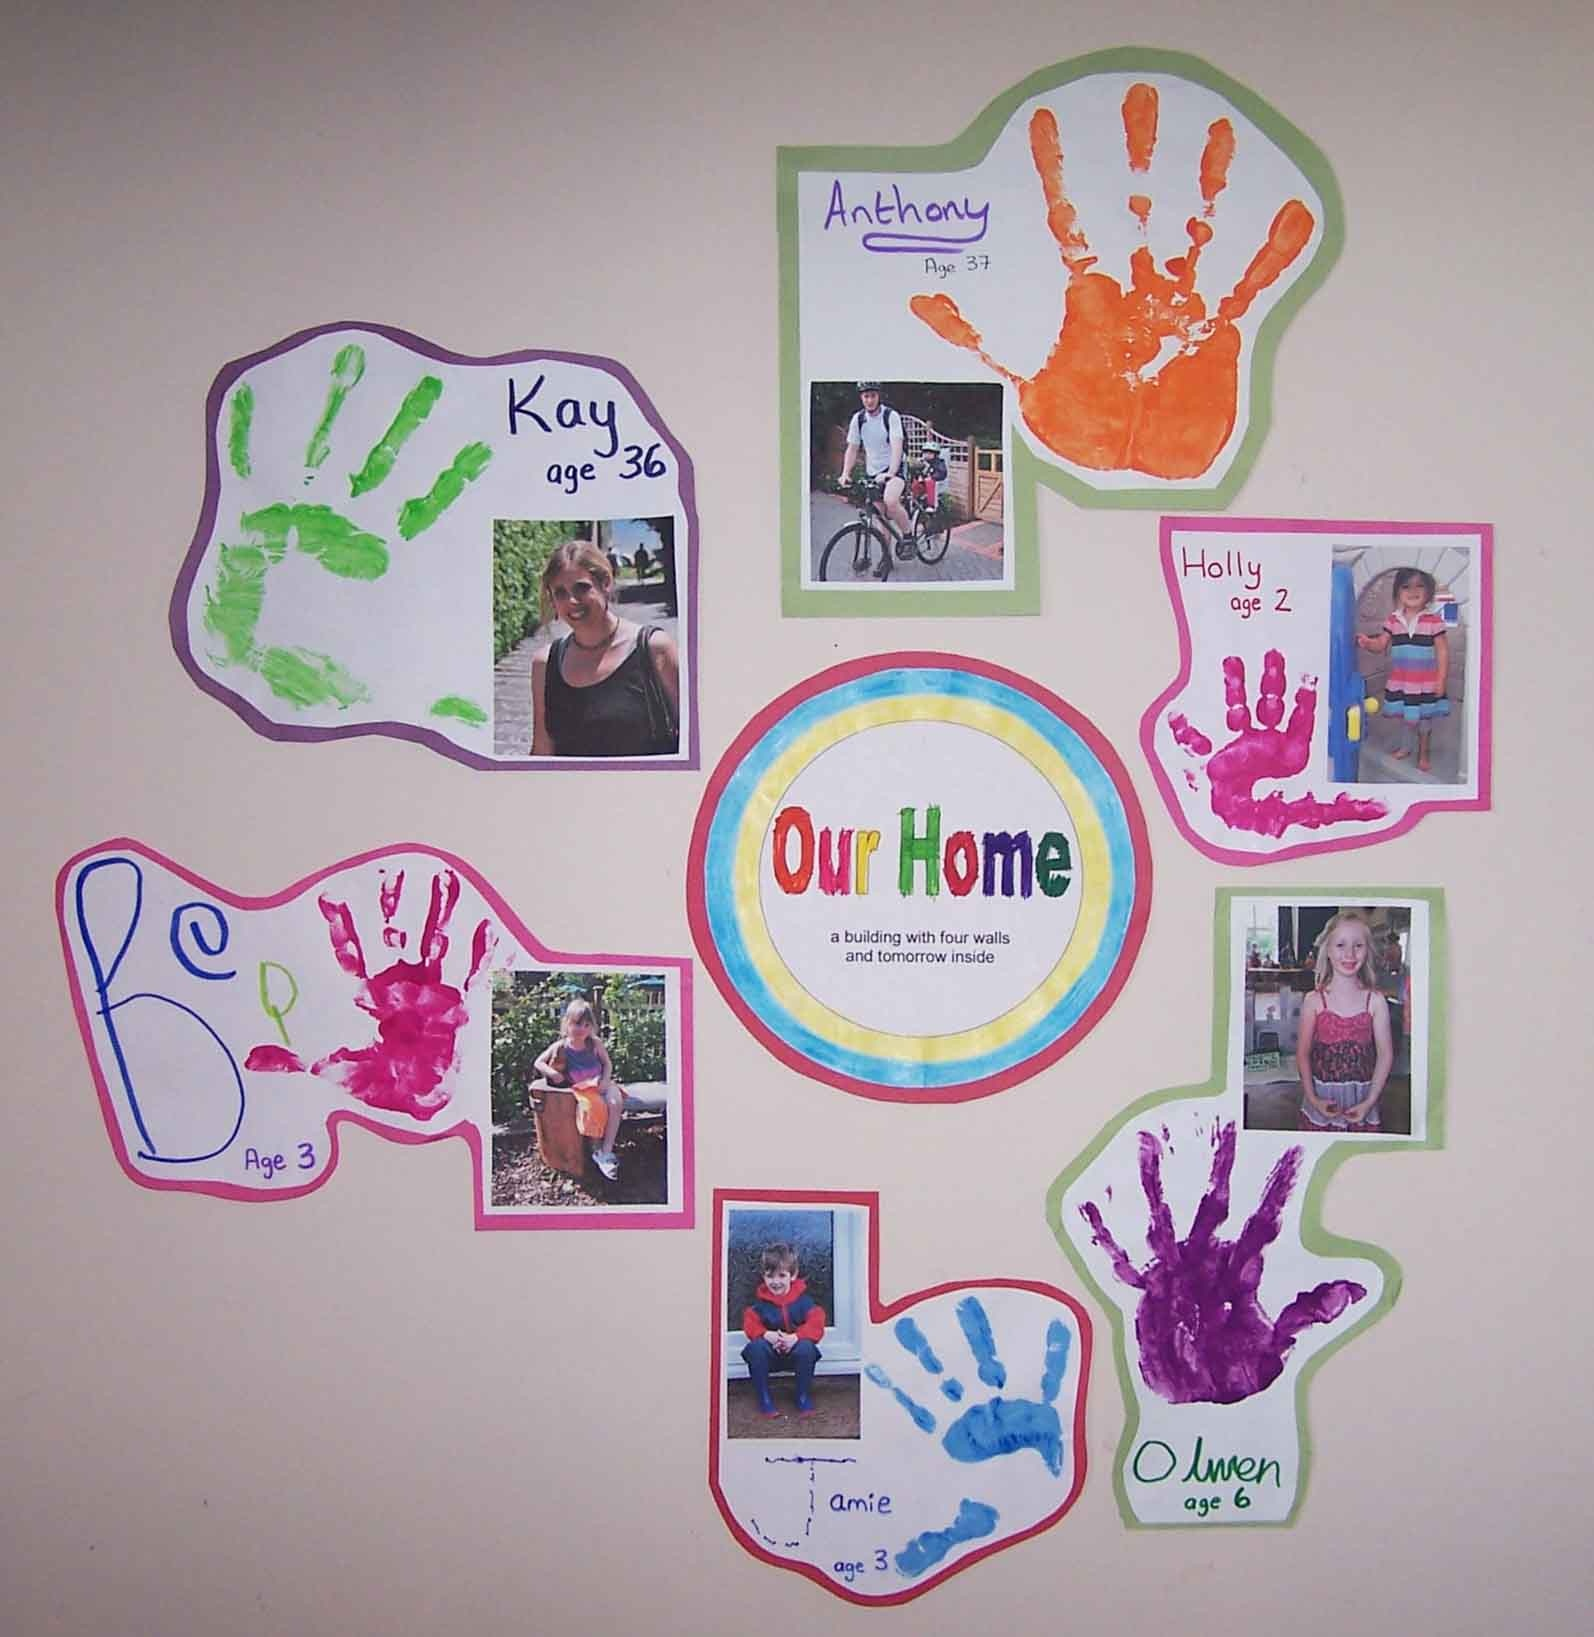 Posters For Childminding Settings « Childminding Best Practice - Free Printable Childminding Resources